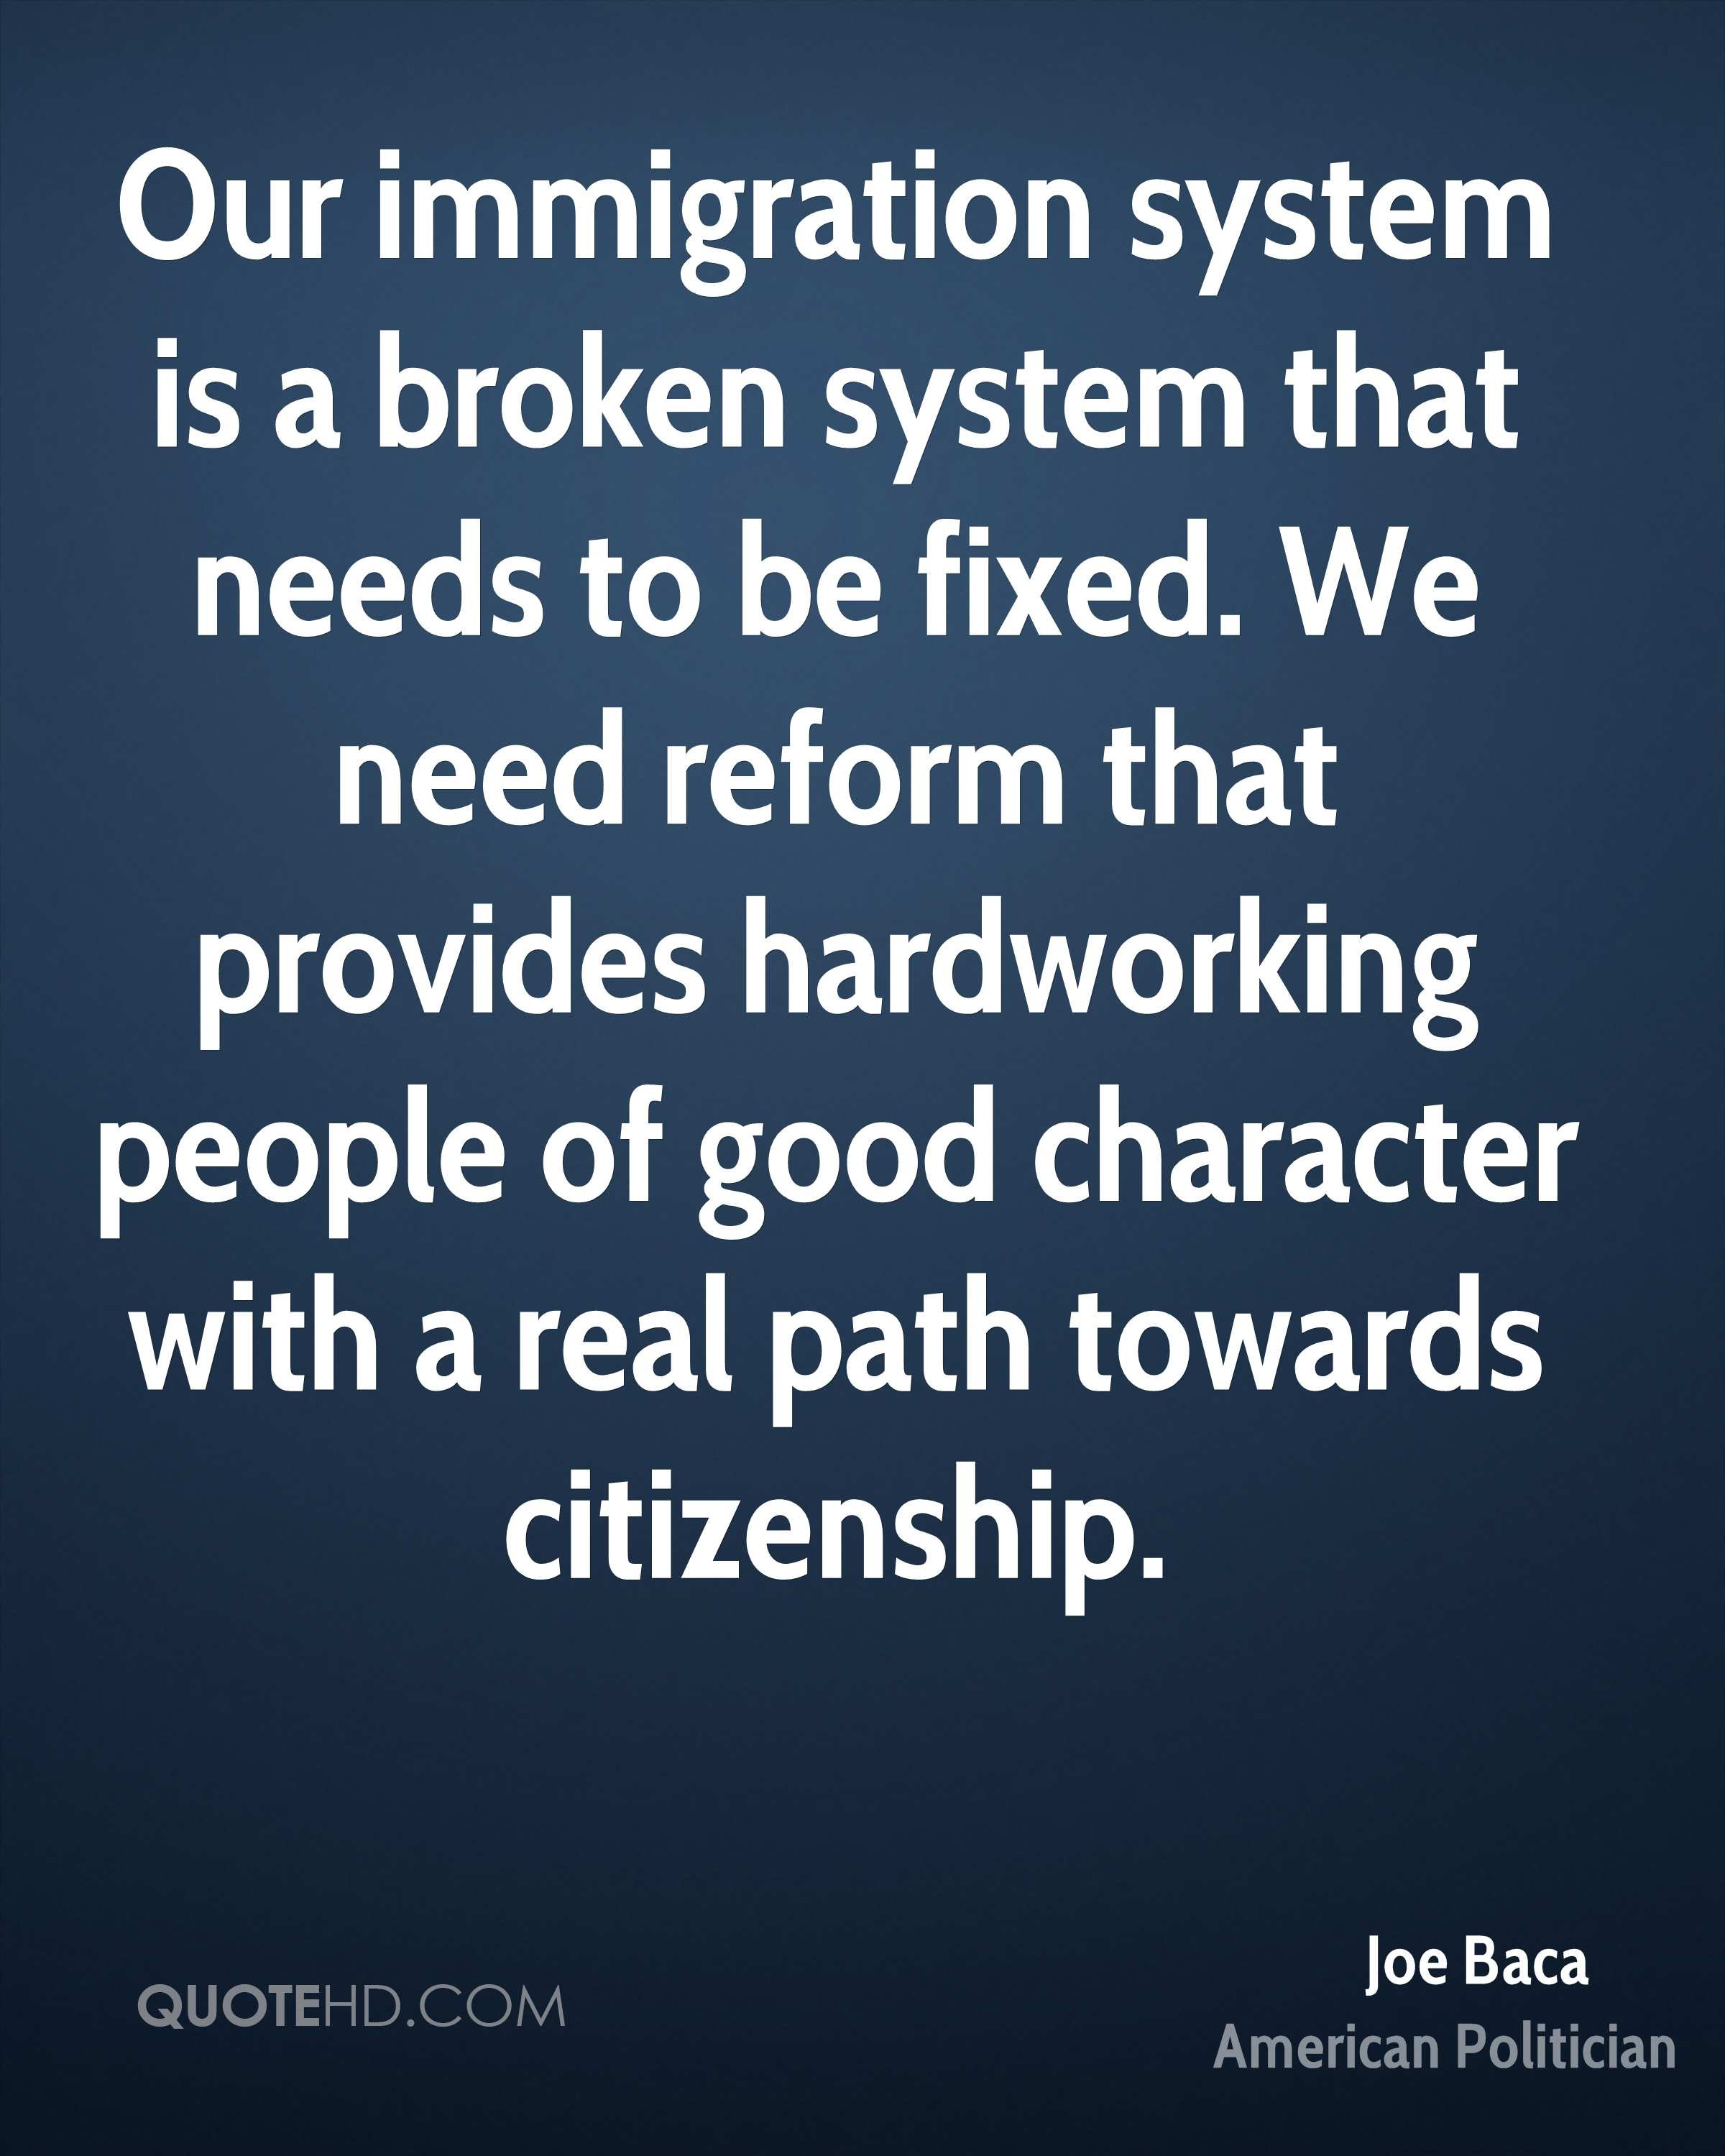 Our immigration system is a broken system that needs to be fixed. We need reform that provides hardworking people of good character with a real path towards citizenship.